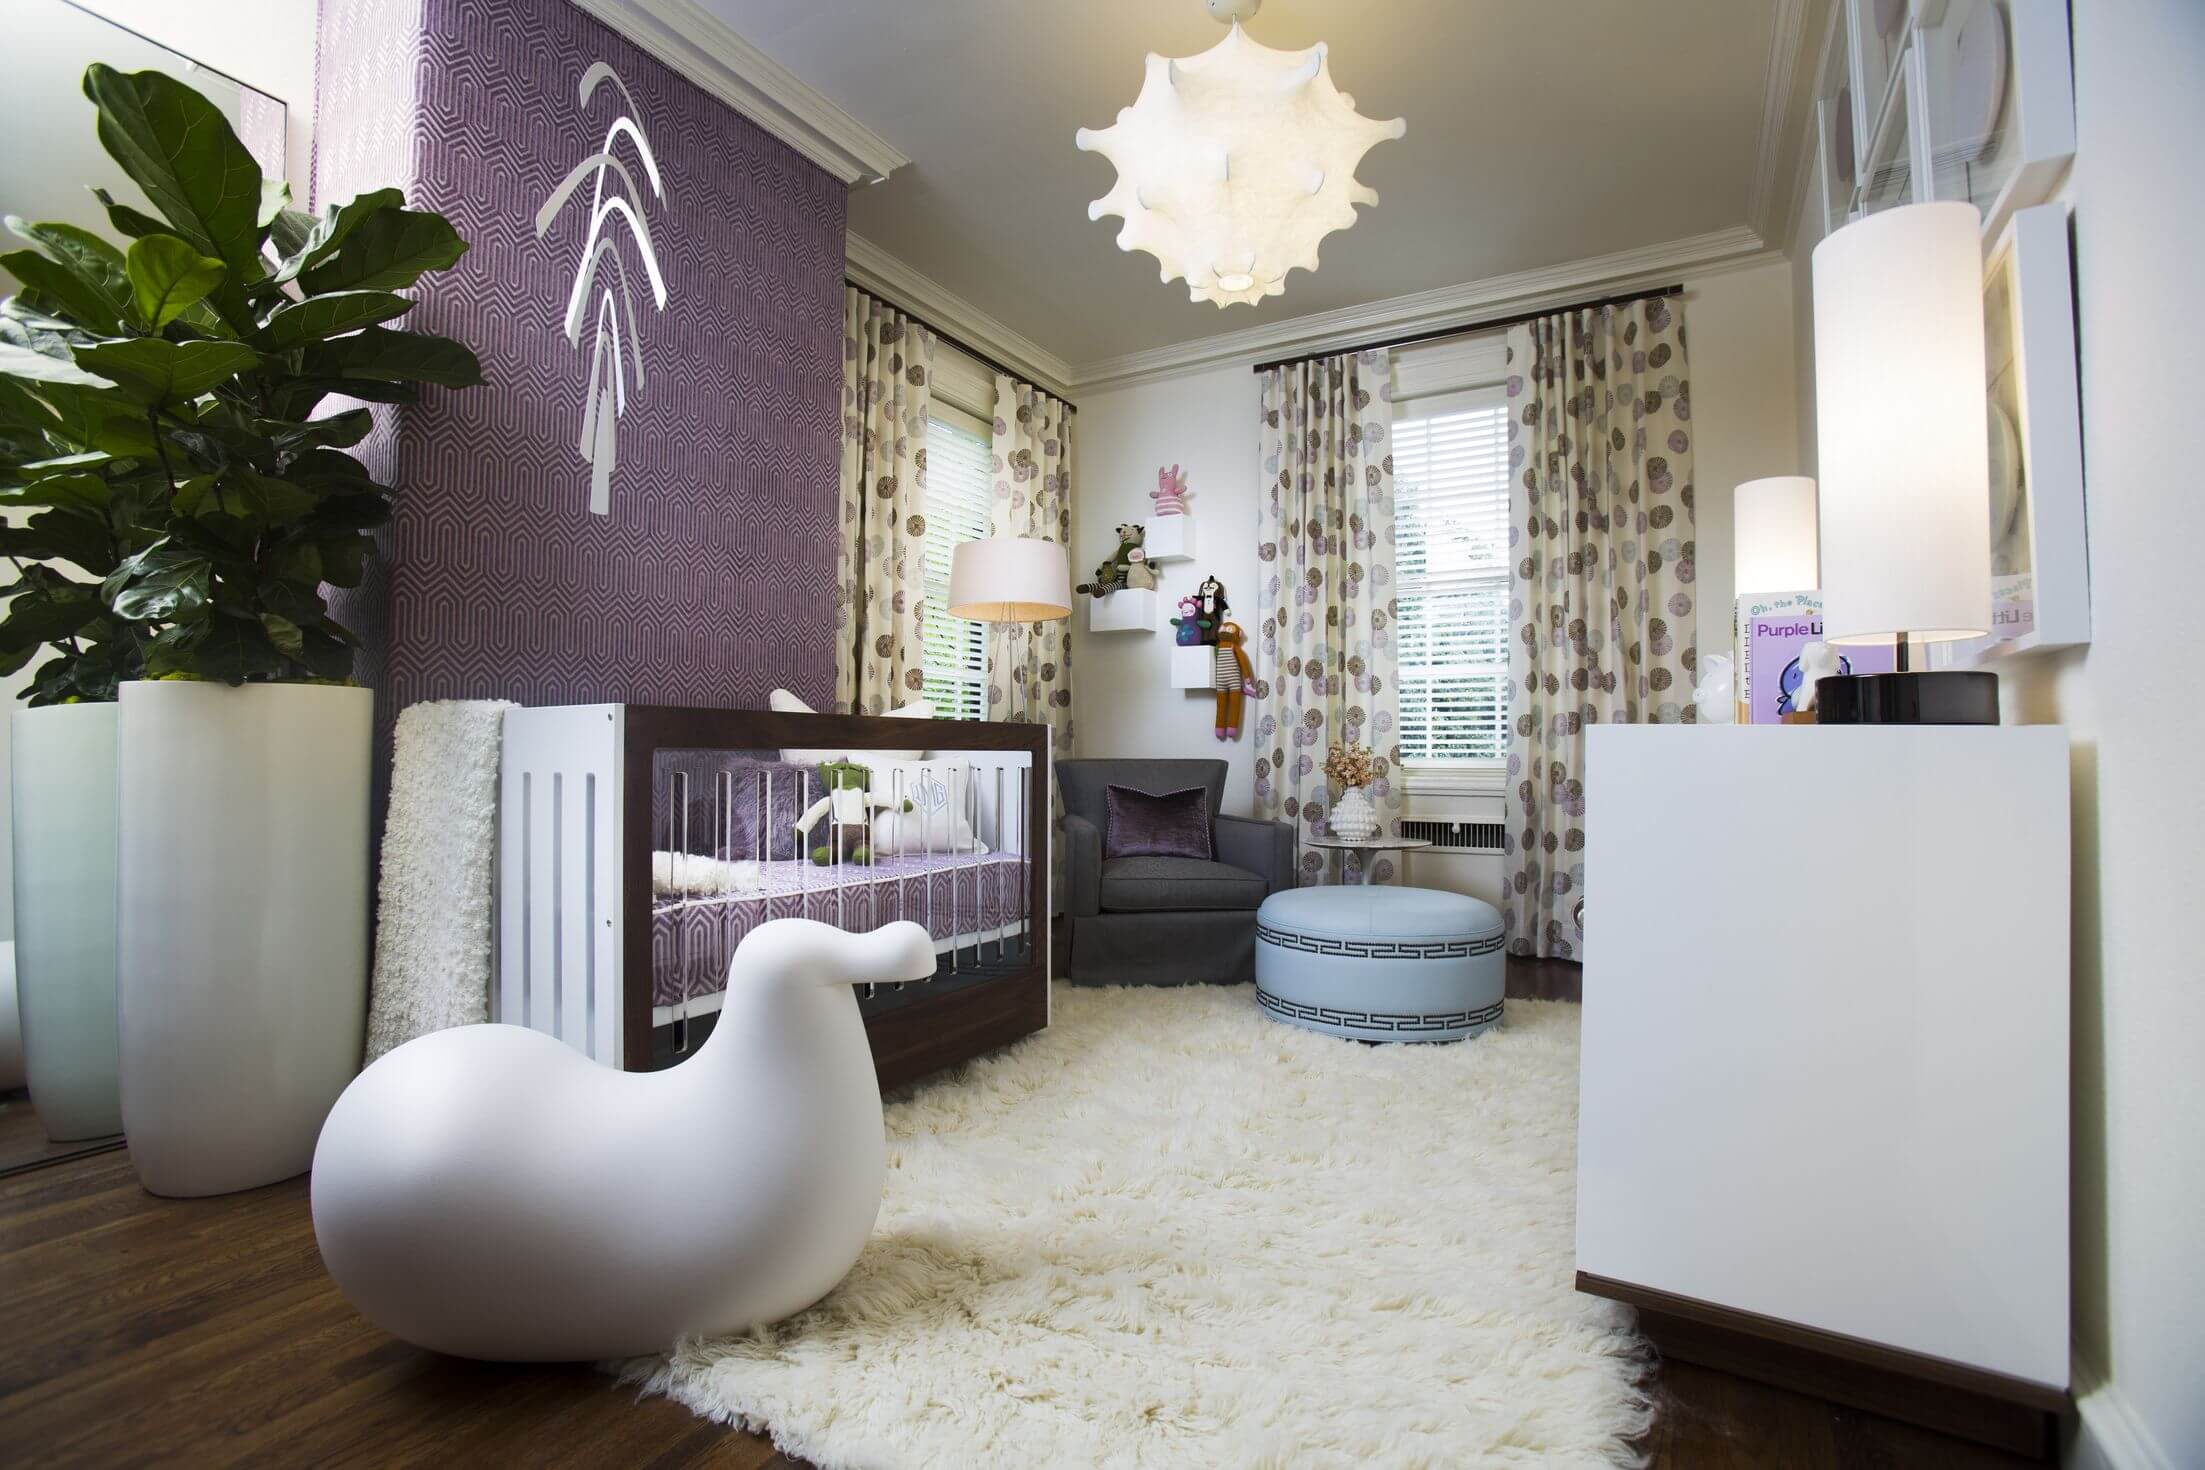 Baby cribs with matching dresser - Purple Wall Design And Matching Bedding Accent This Mostly White Nursery Featuring Fur Rug Over